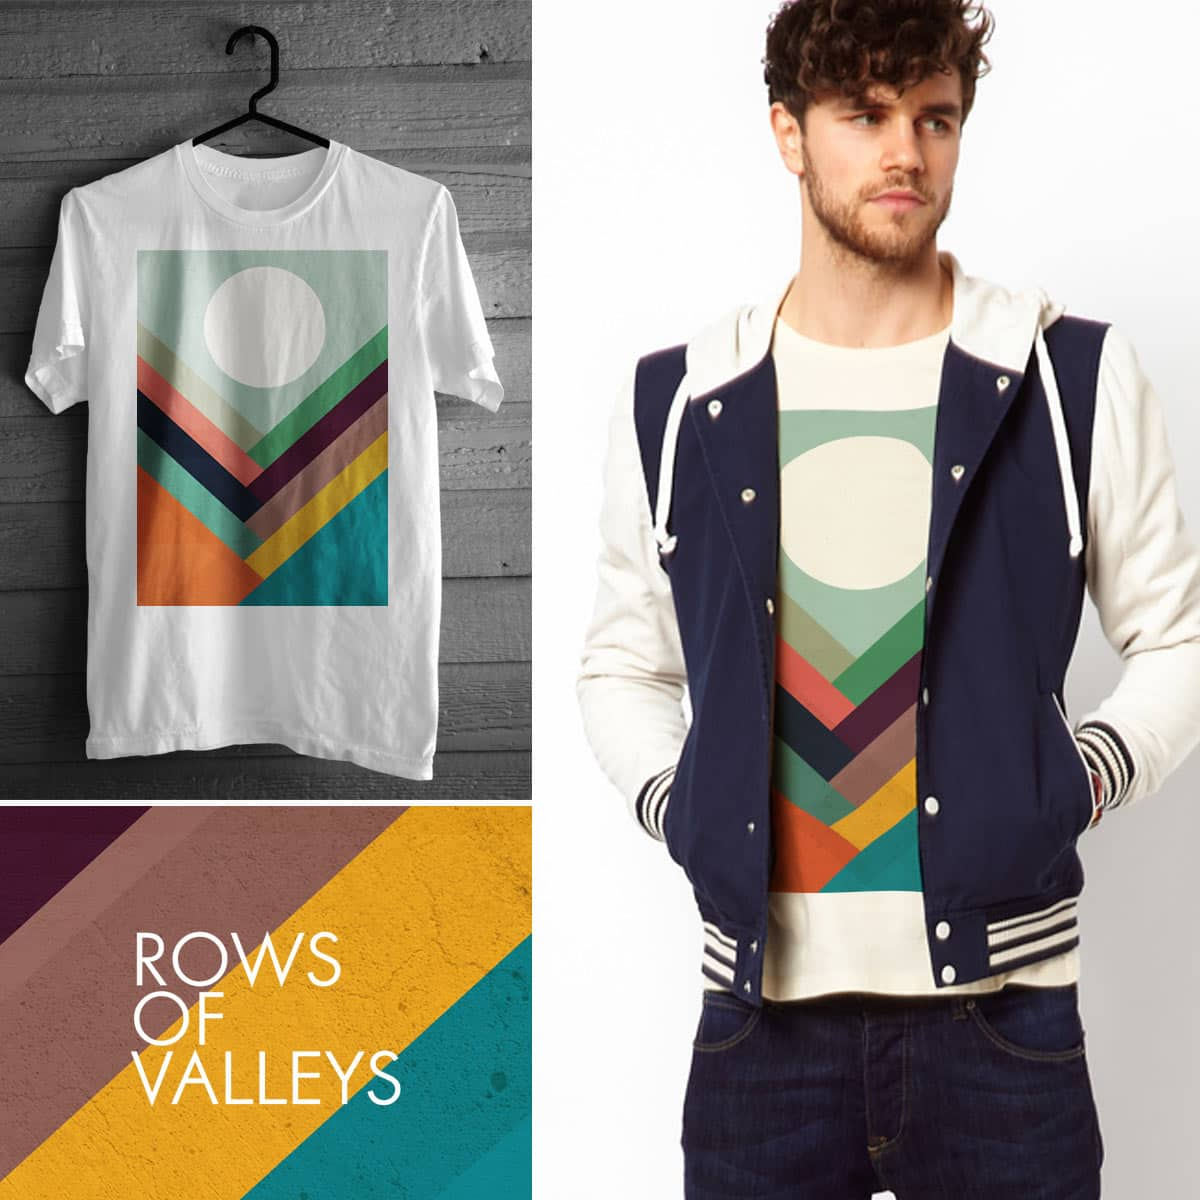 Rows of Valleys by radiomode on Threadless